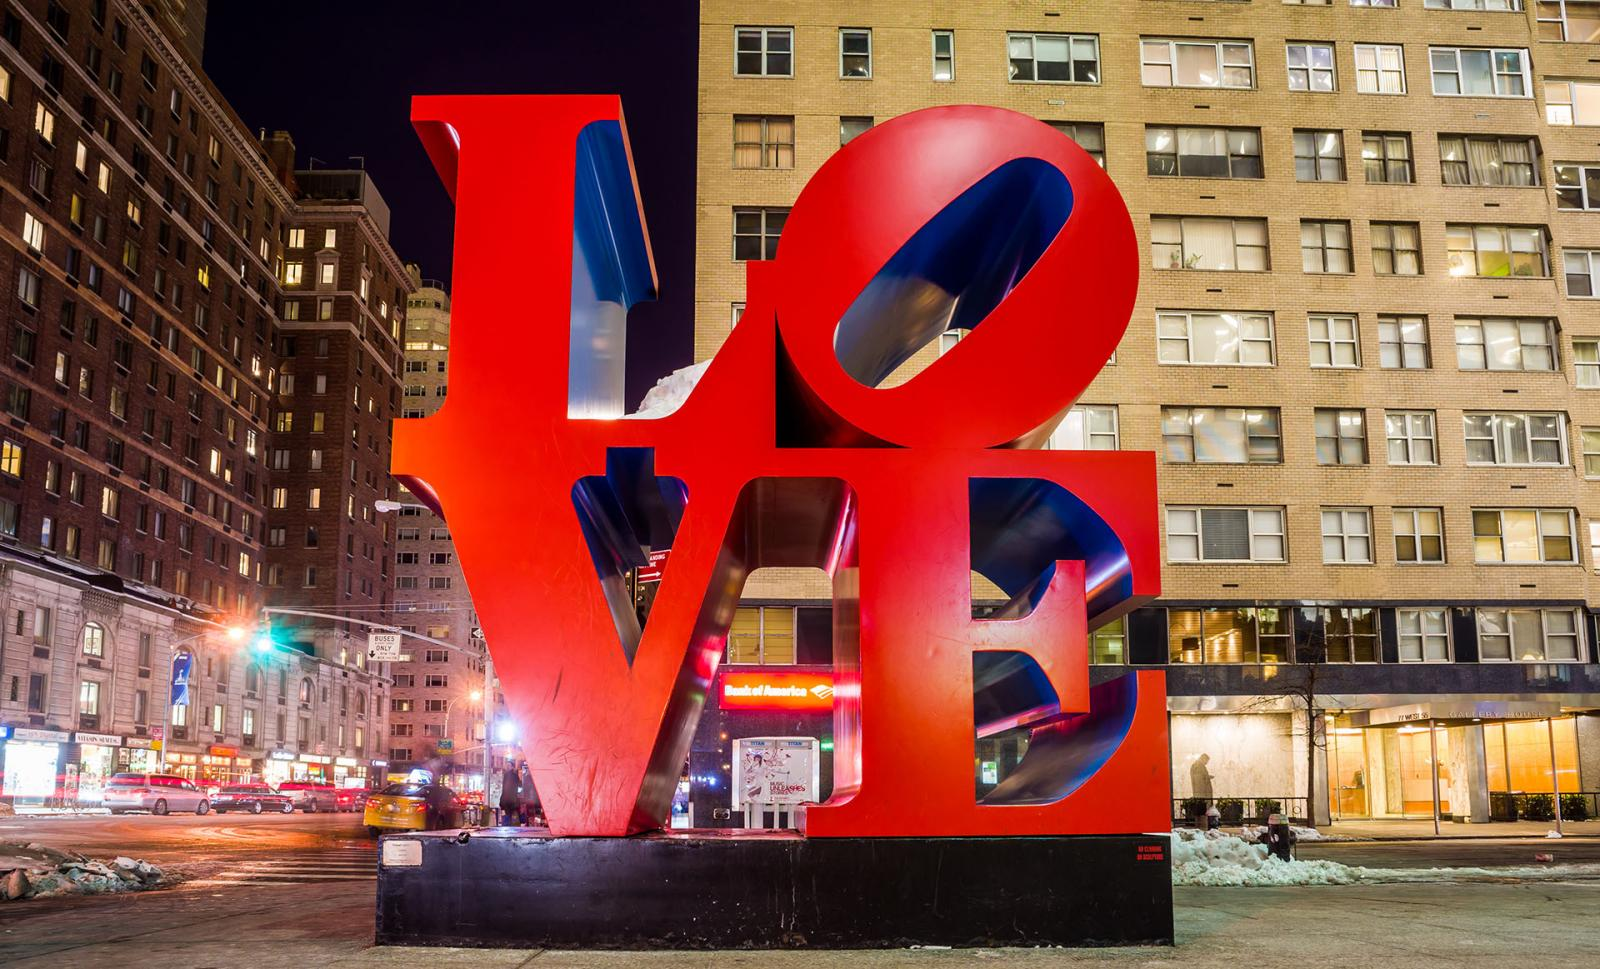 Love sculpture at night in New York